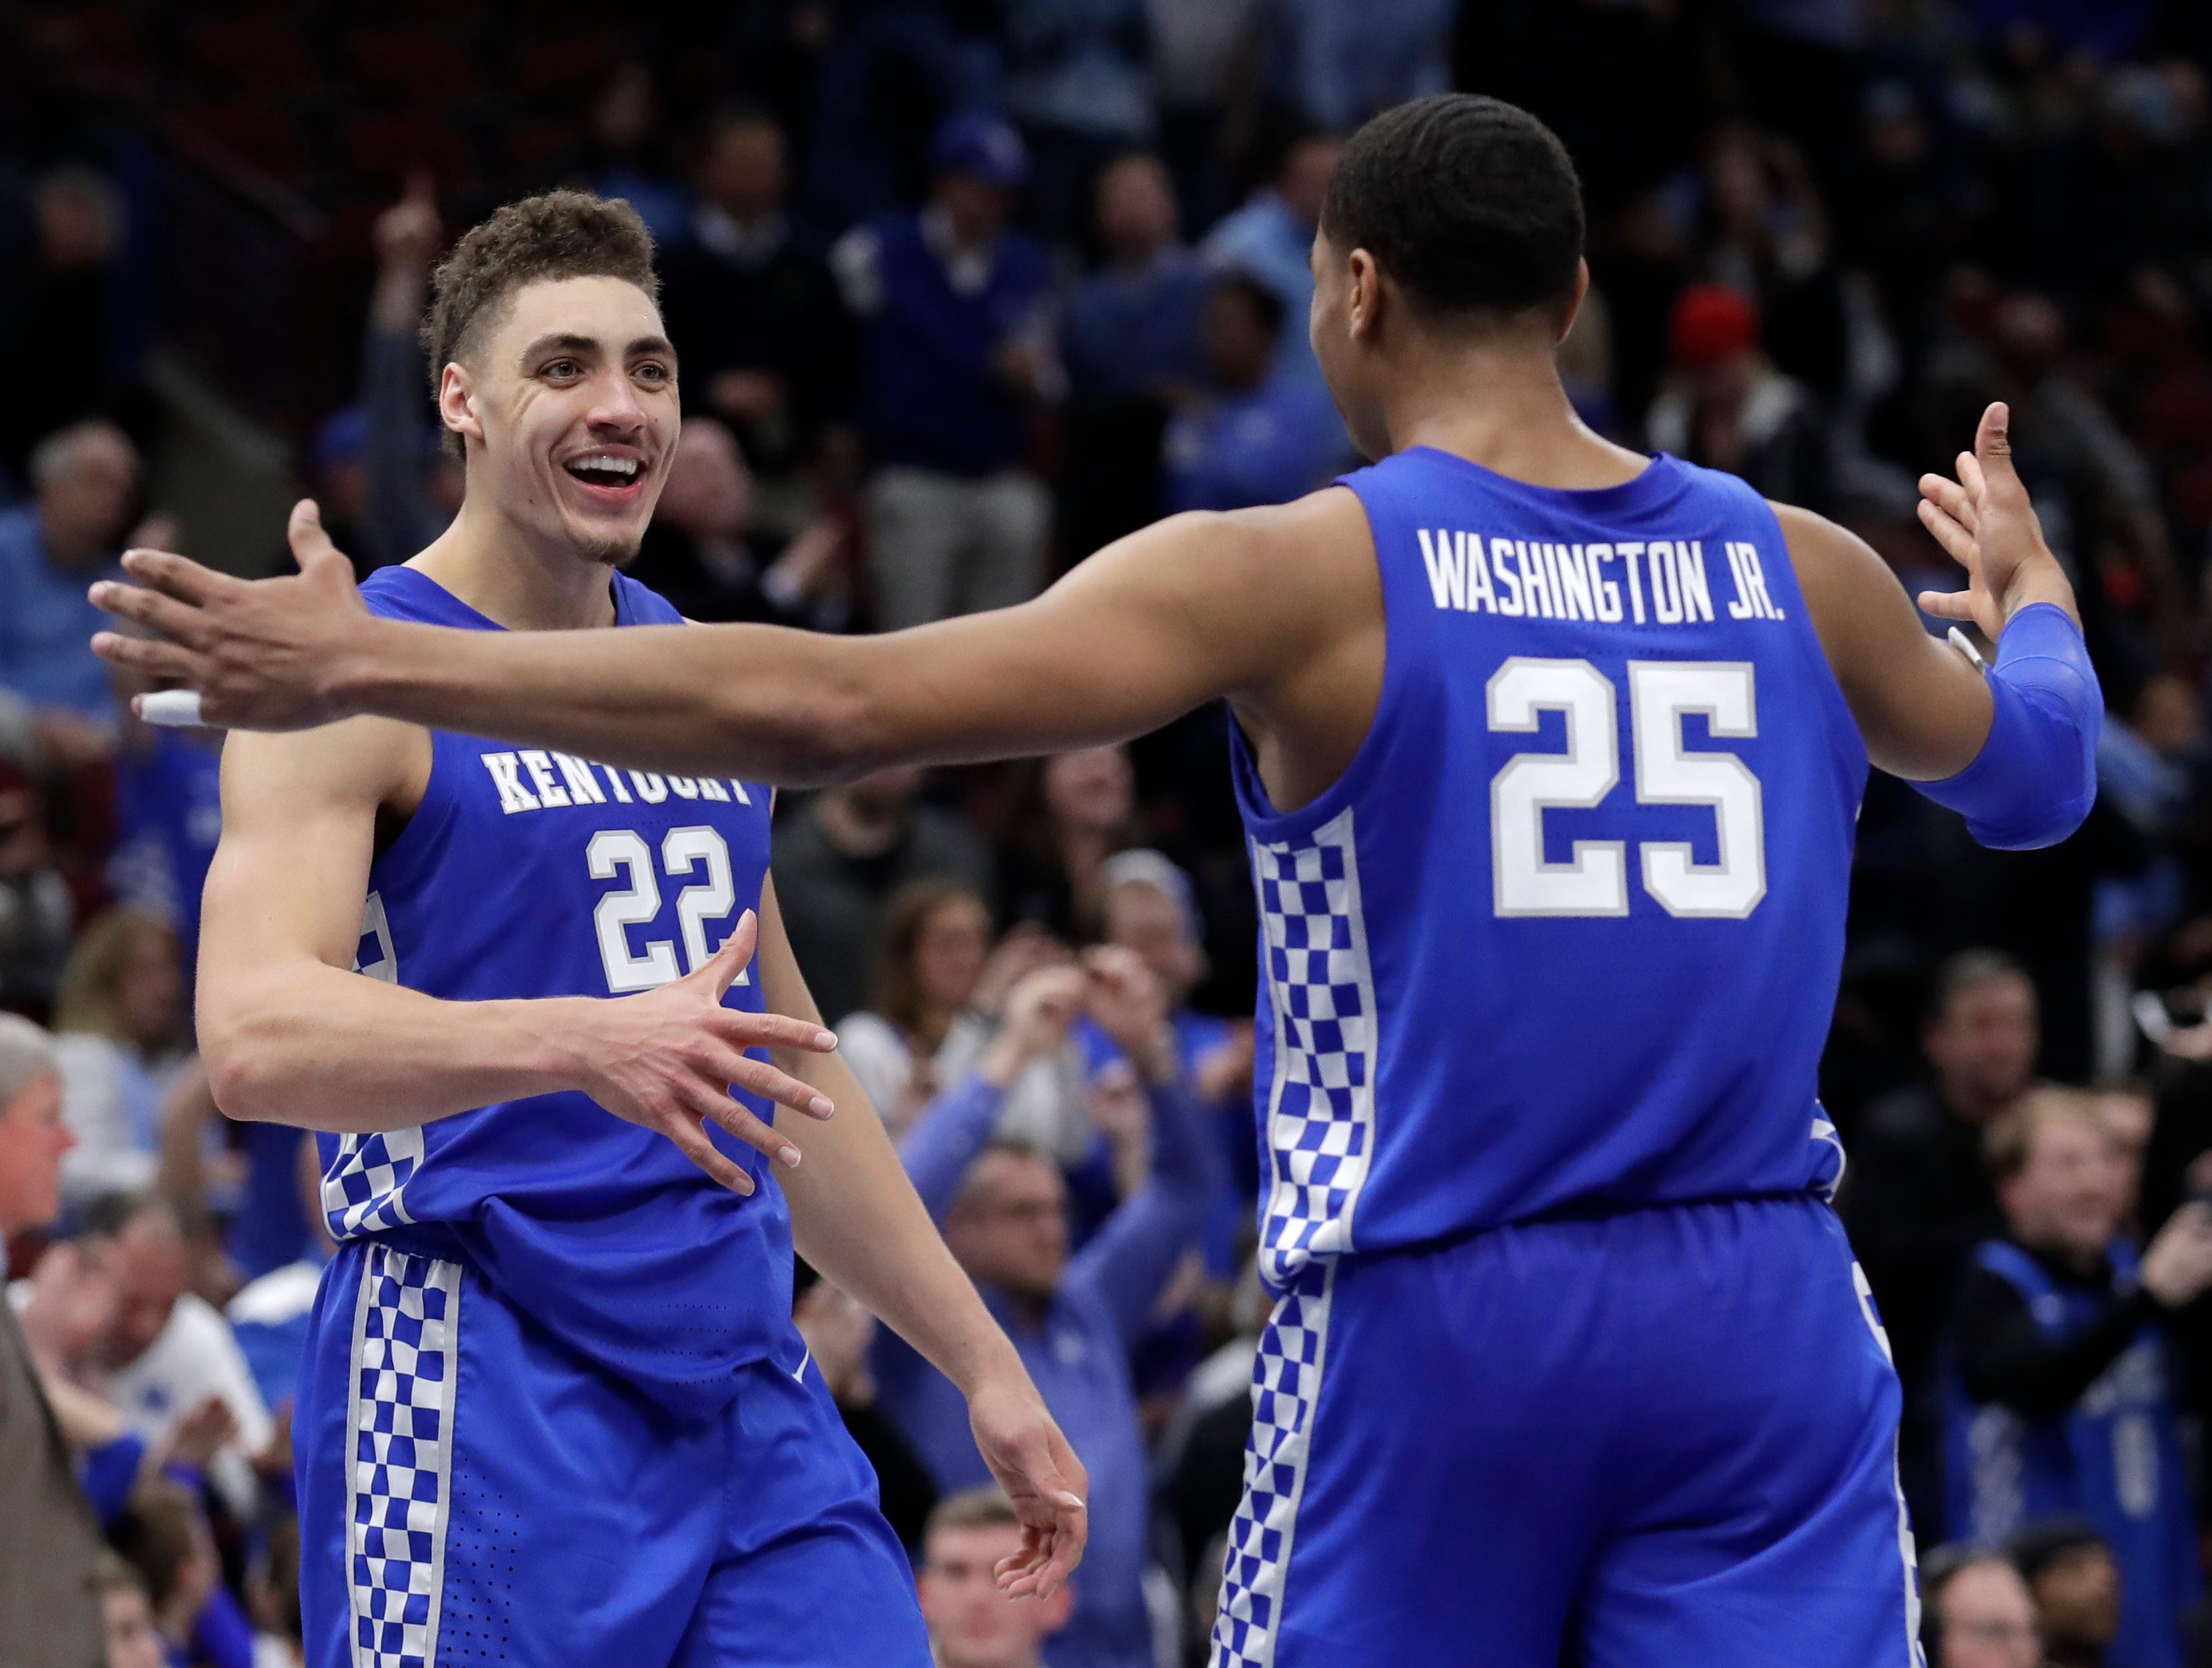 Kentucky forward Reid Travis, left, celebrates with forward PJ Washington Jr., after their team defeated North Carolina in an NCAA college basketball game in the fifth annual CBS Sports Classic, Saturday, Dec. 22, 2018, in Chicago.